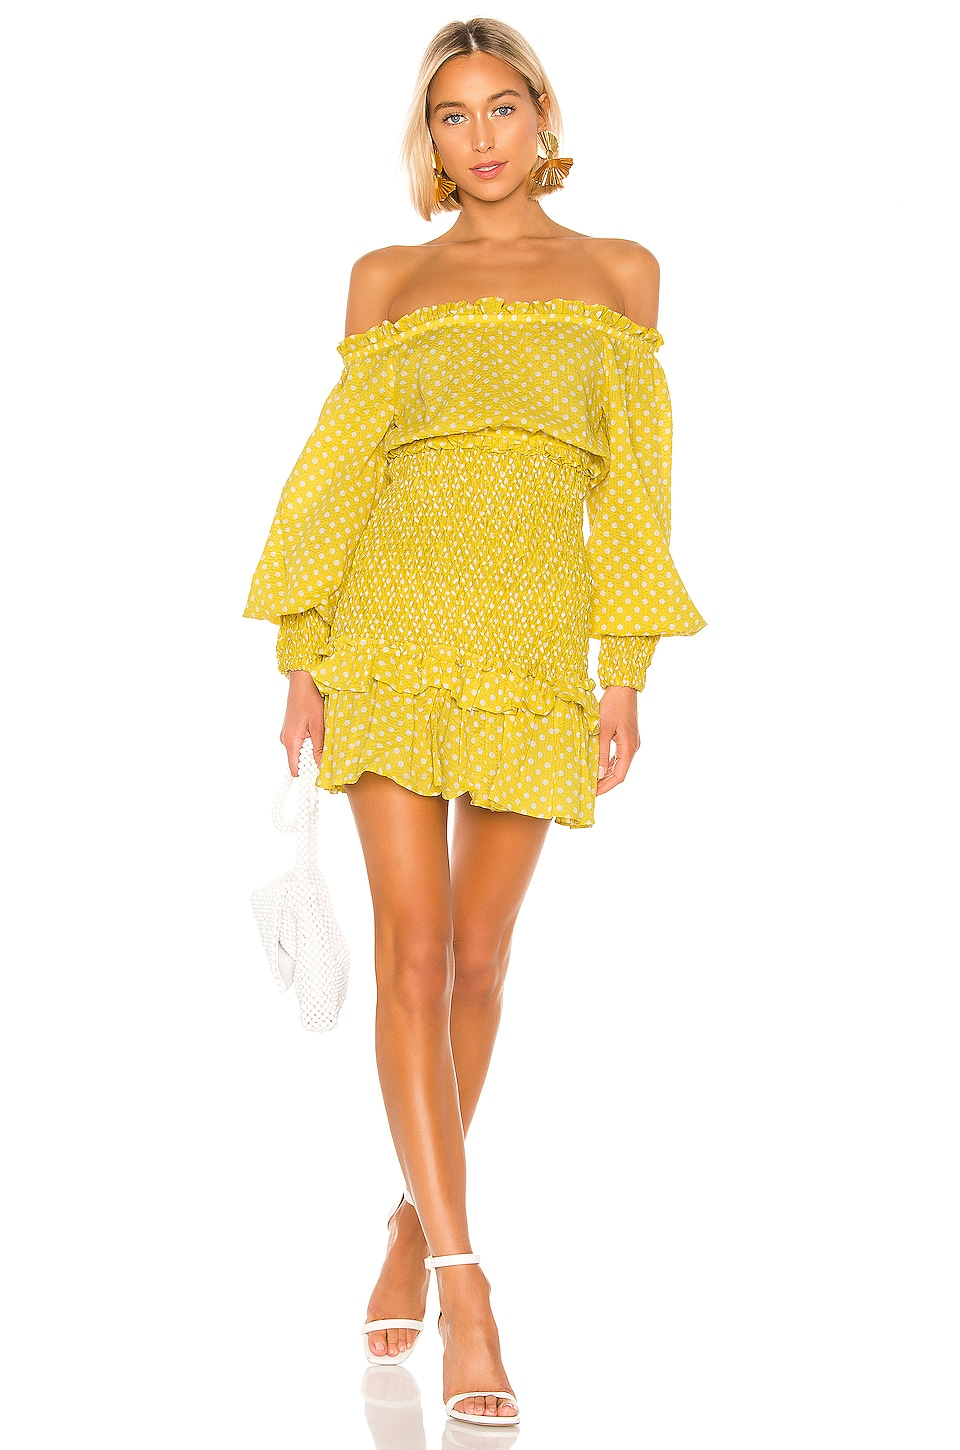 Alexis Marilena Dress in Yellow Dot